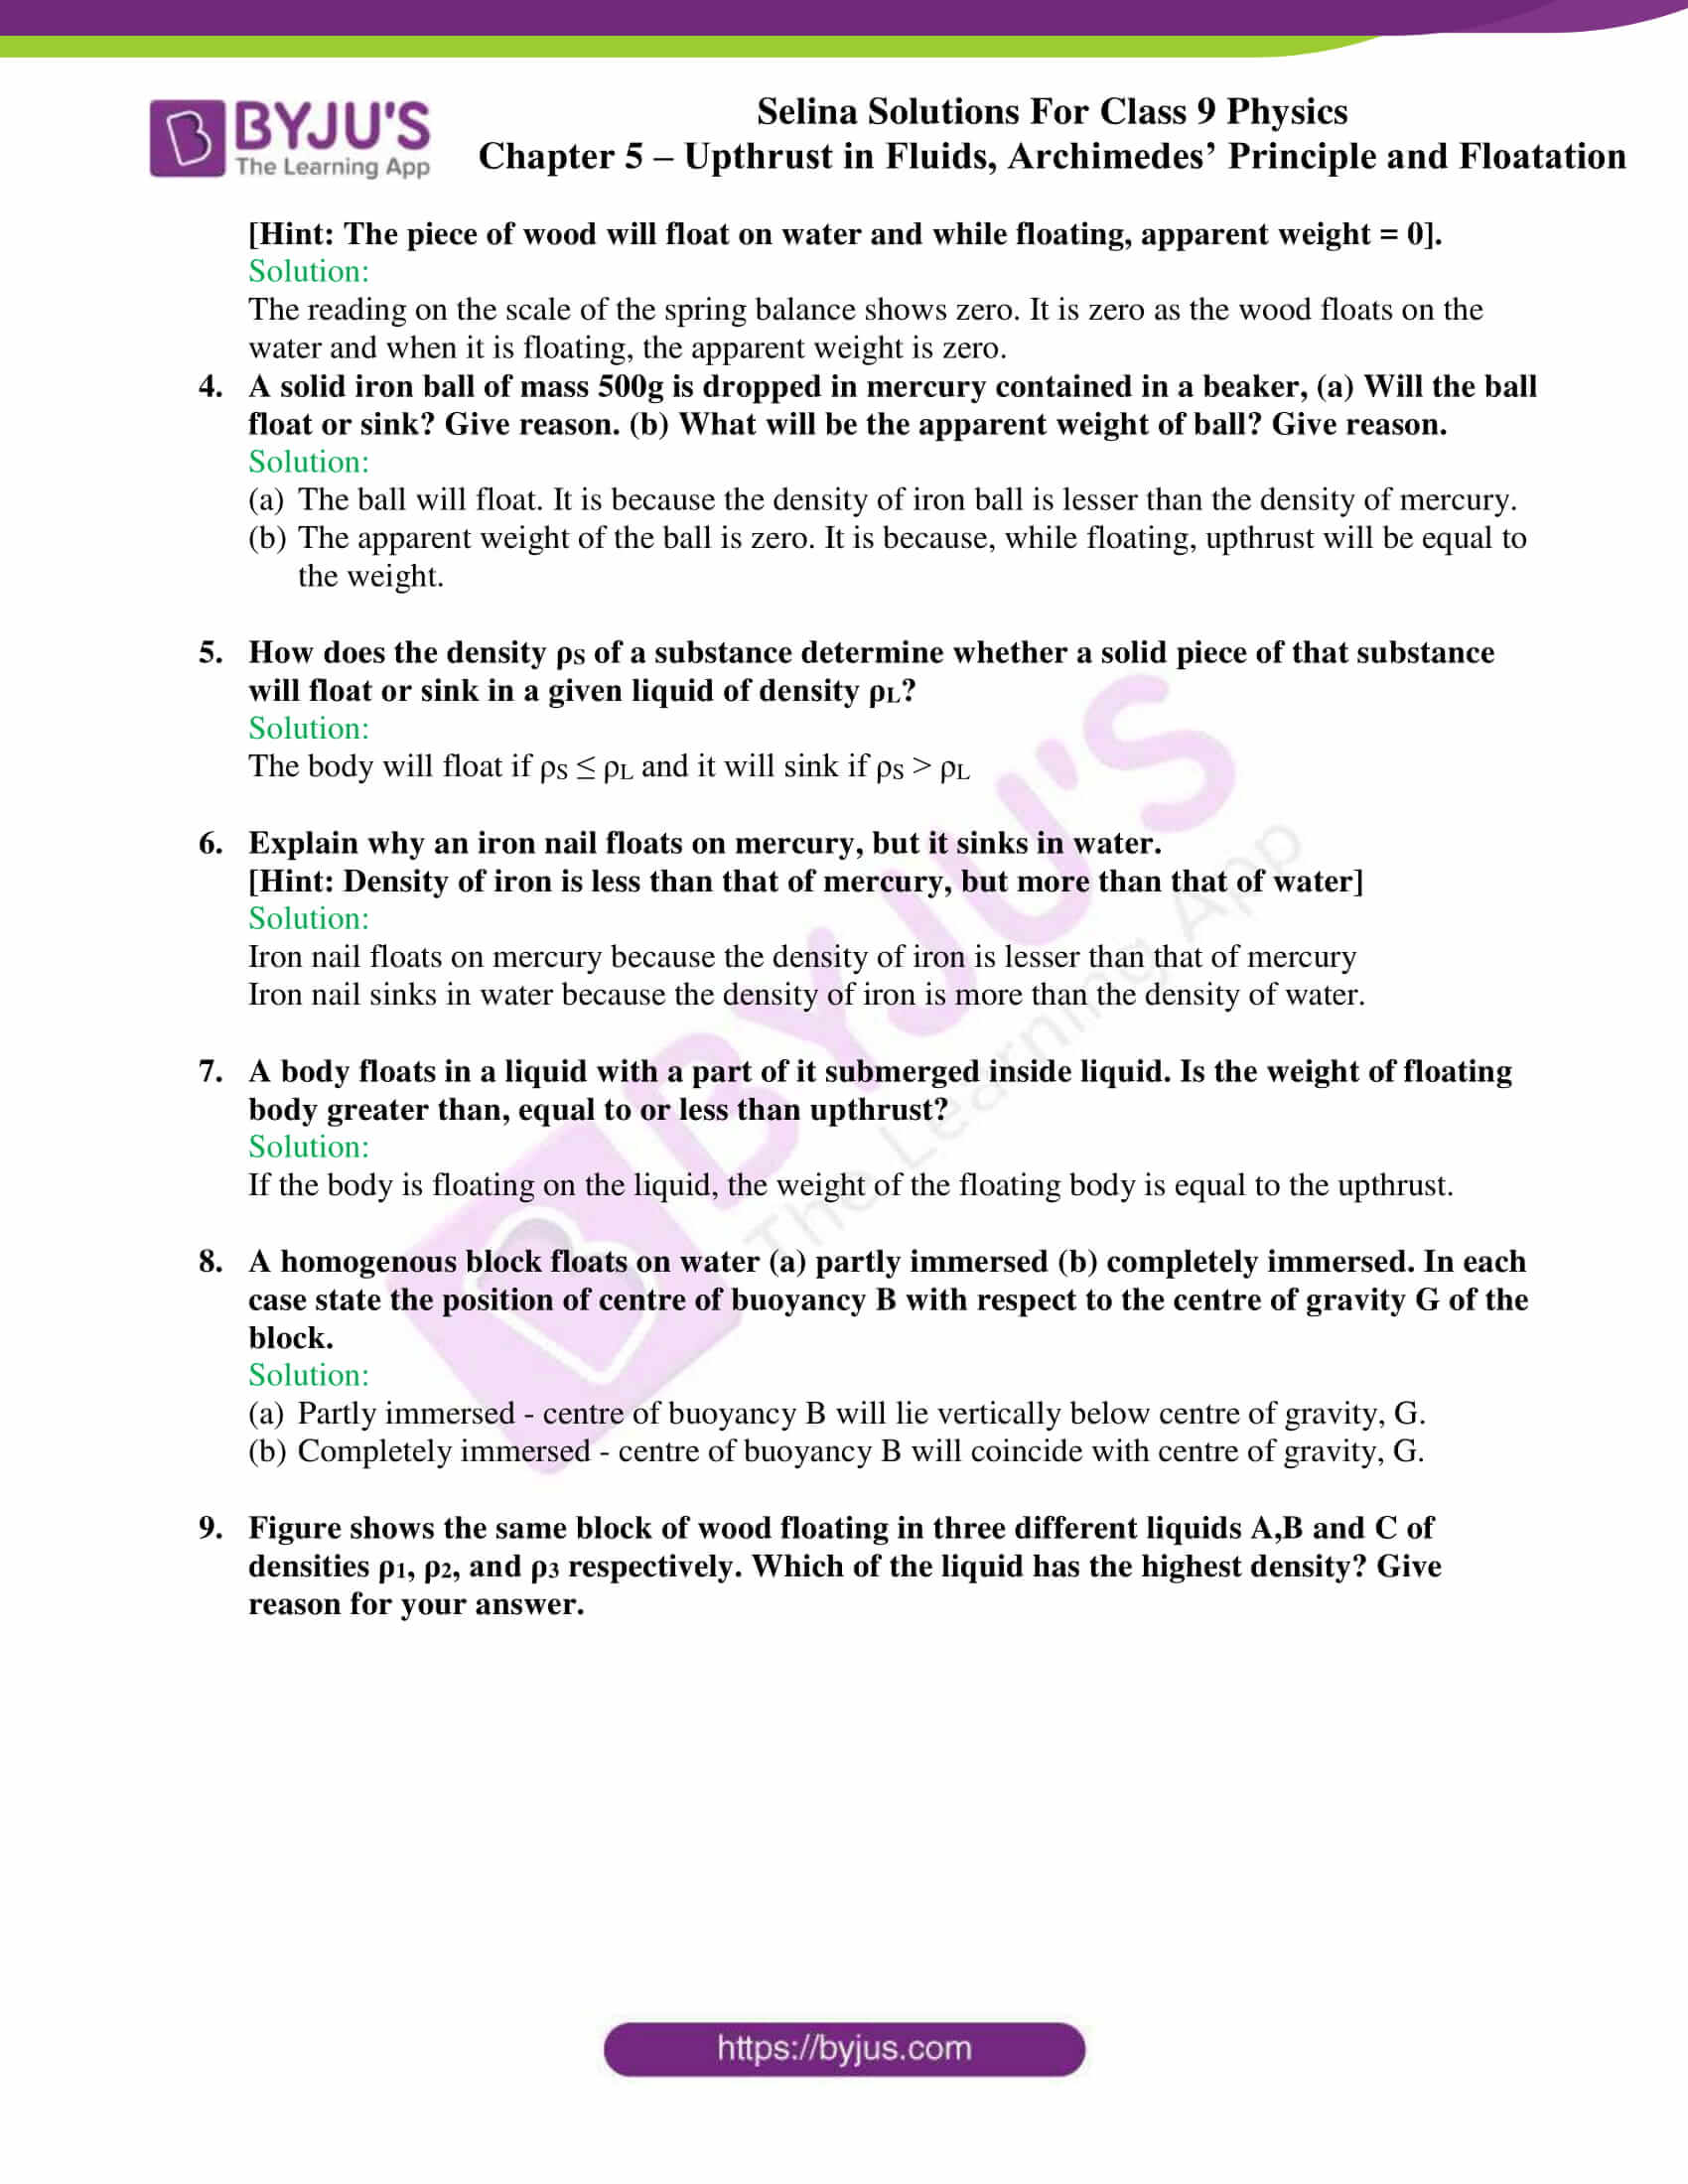 selina solutions class 9 physics chapter 5 part 24